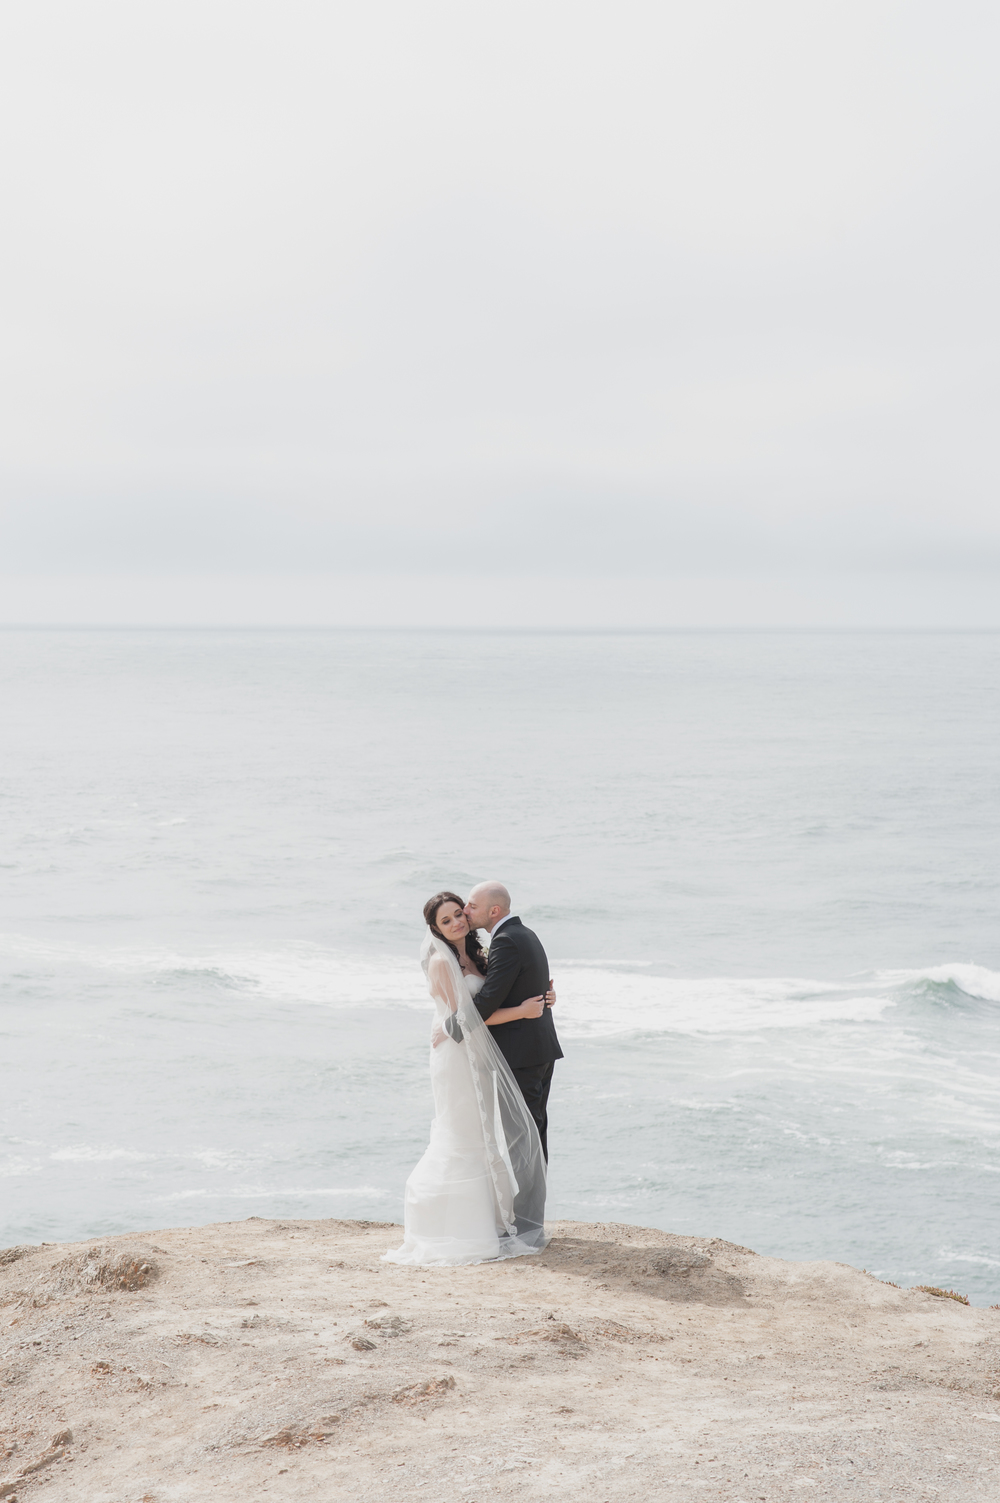 intimate-san-francisco-city-hall-lands-end-wedding-39.jpg